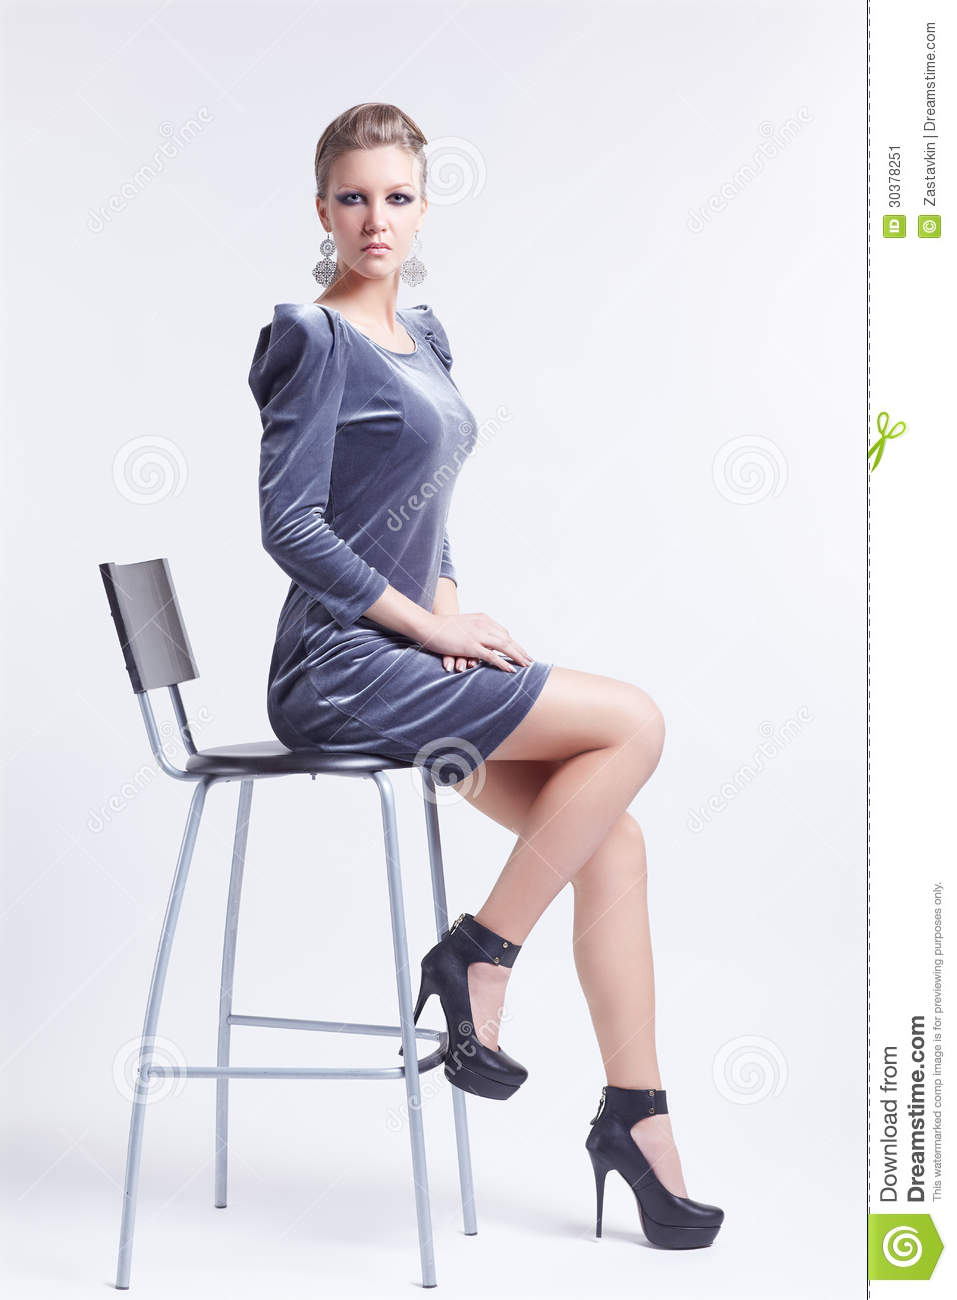 Brunette On Bar Stool Stock Image Image 30378251 : brunette bar stool portrait beautiful young woman stylish dress court shoes sitting chair 30378251 from dreamstime.com size 957 x 1300 jpeg 78kB